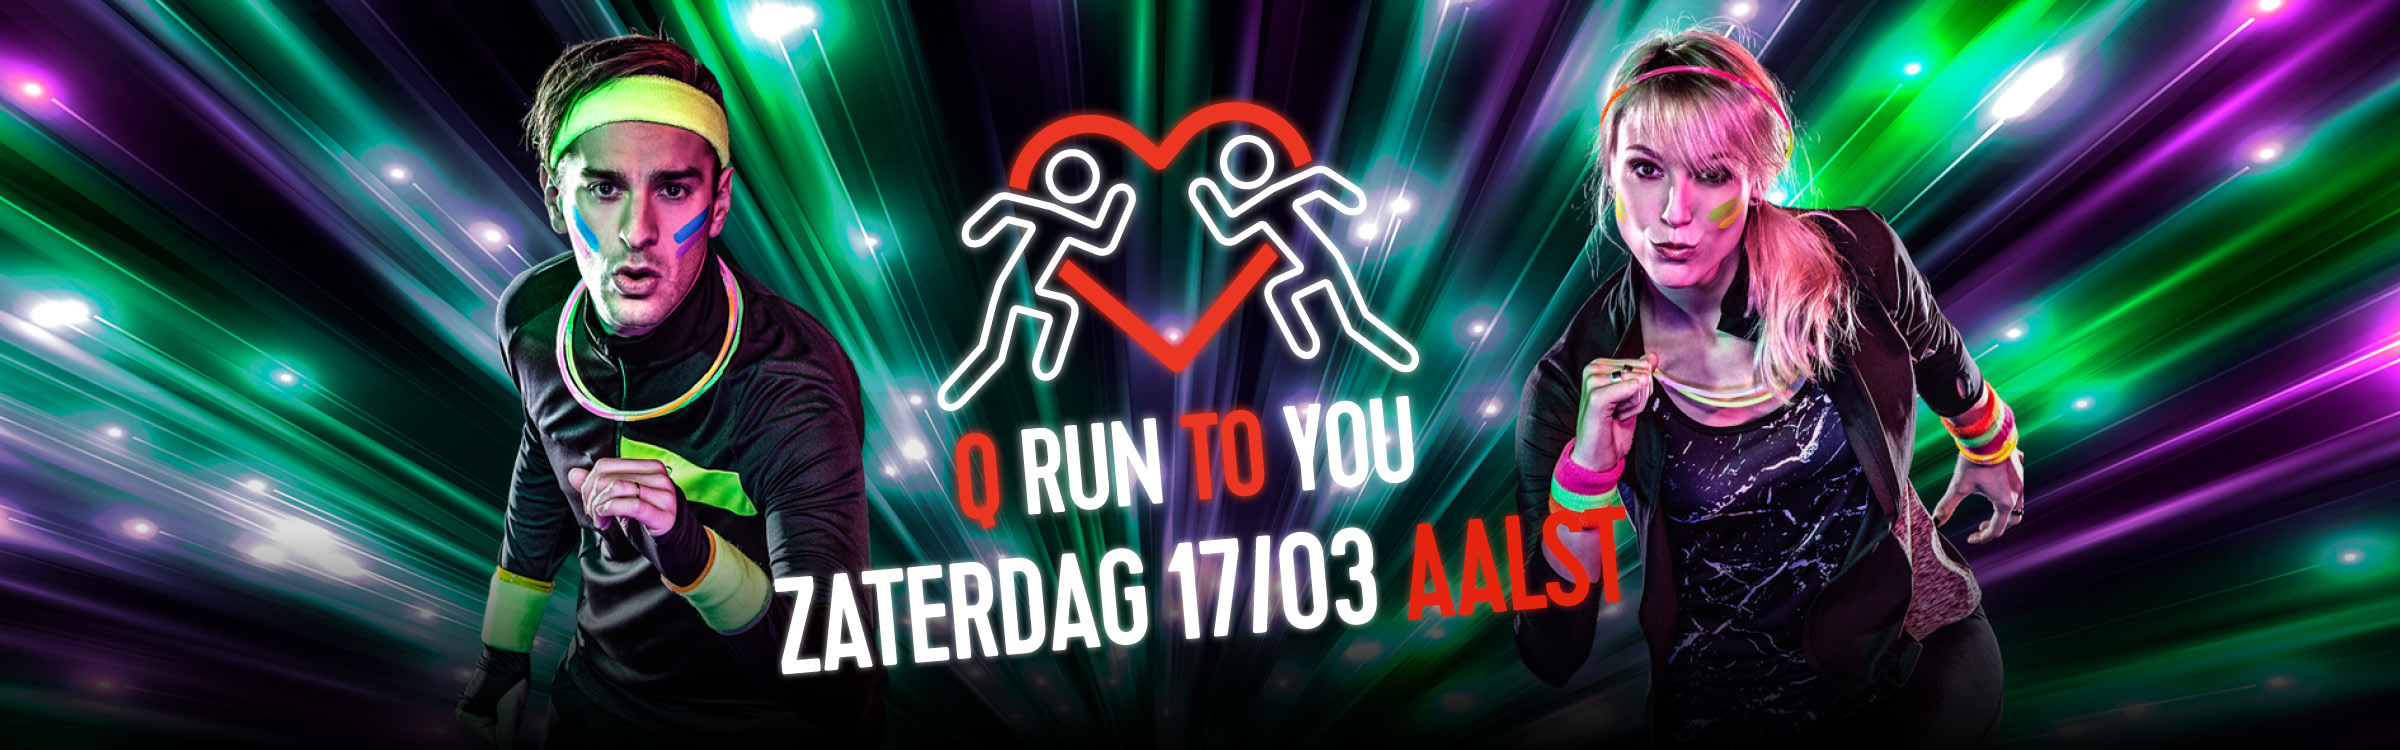 Run to you aalst header 2400x750